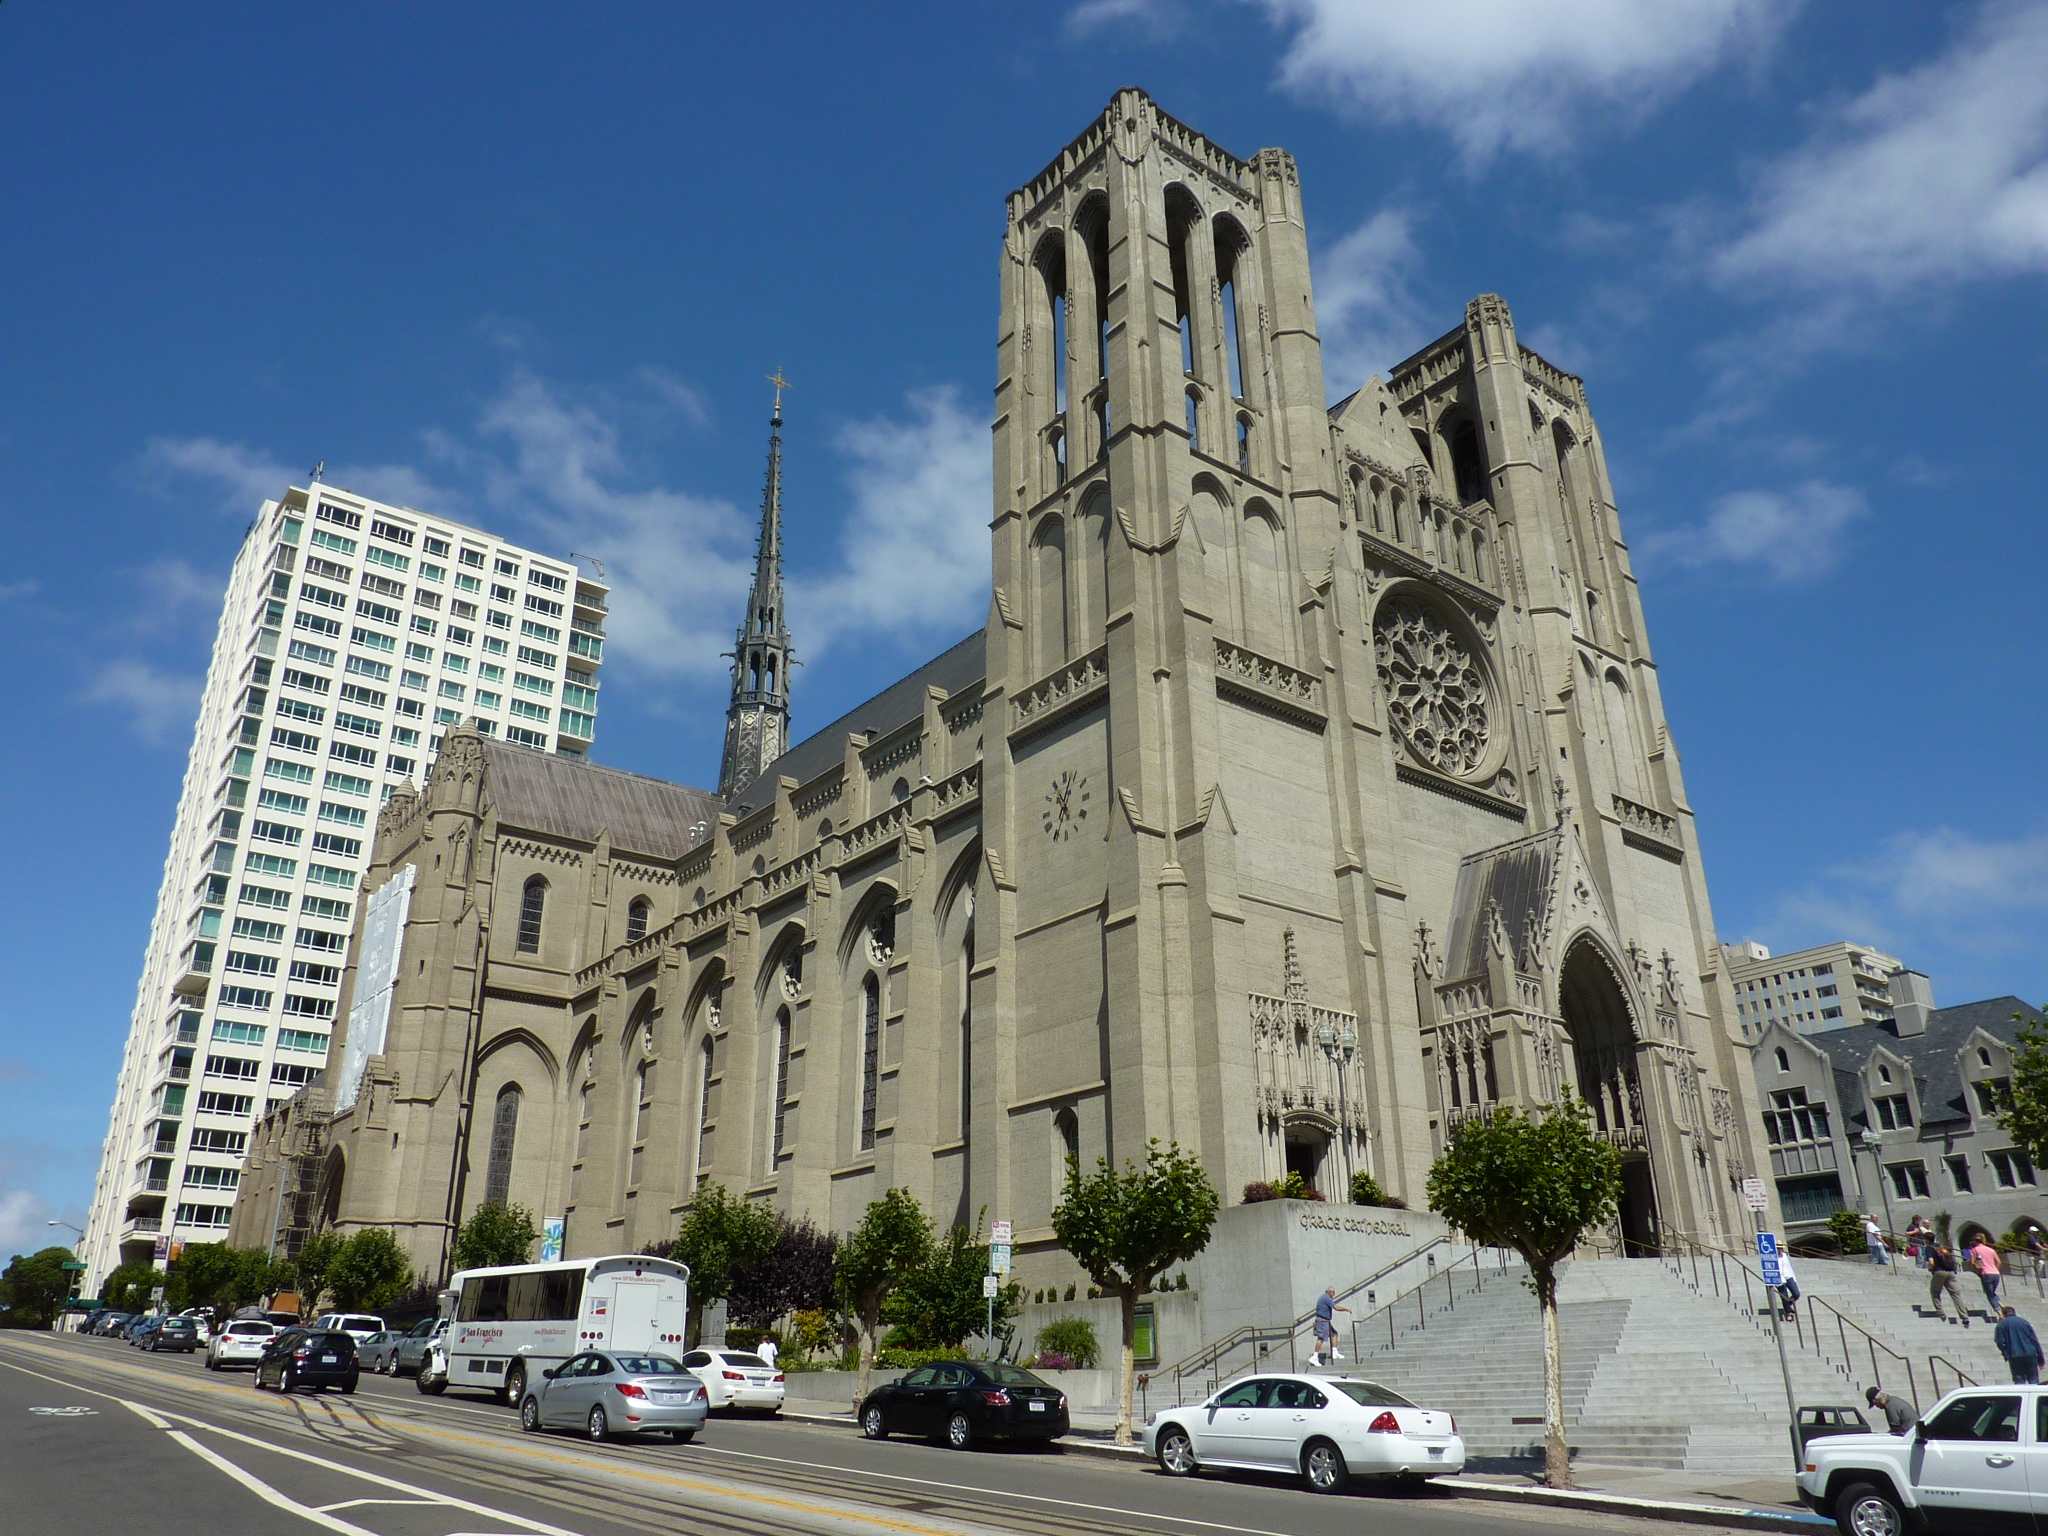 photo credit: Chris06, Grace Cathedral, San Francisco